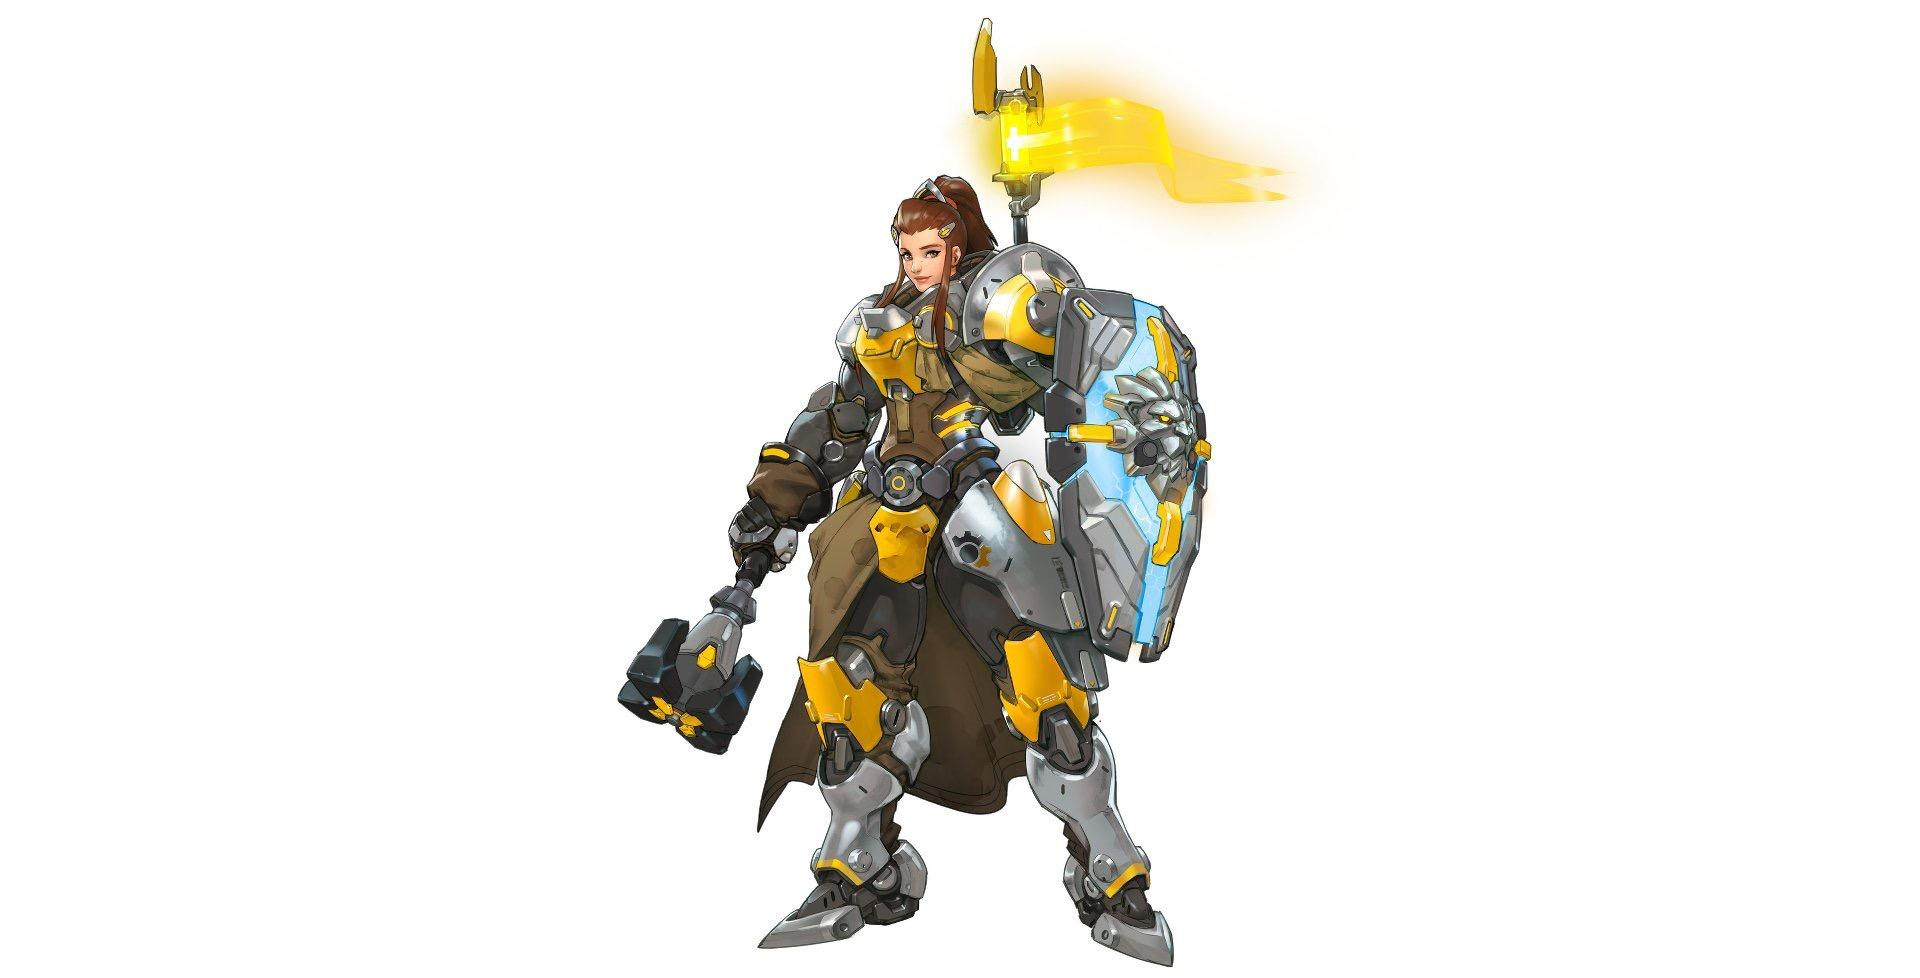 The new Overwatch character Brigitte has been revealed